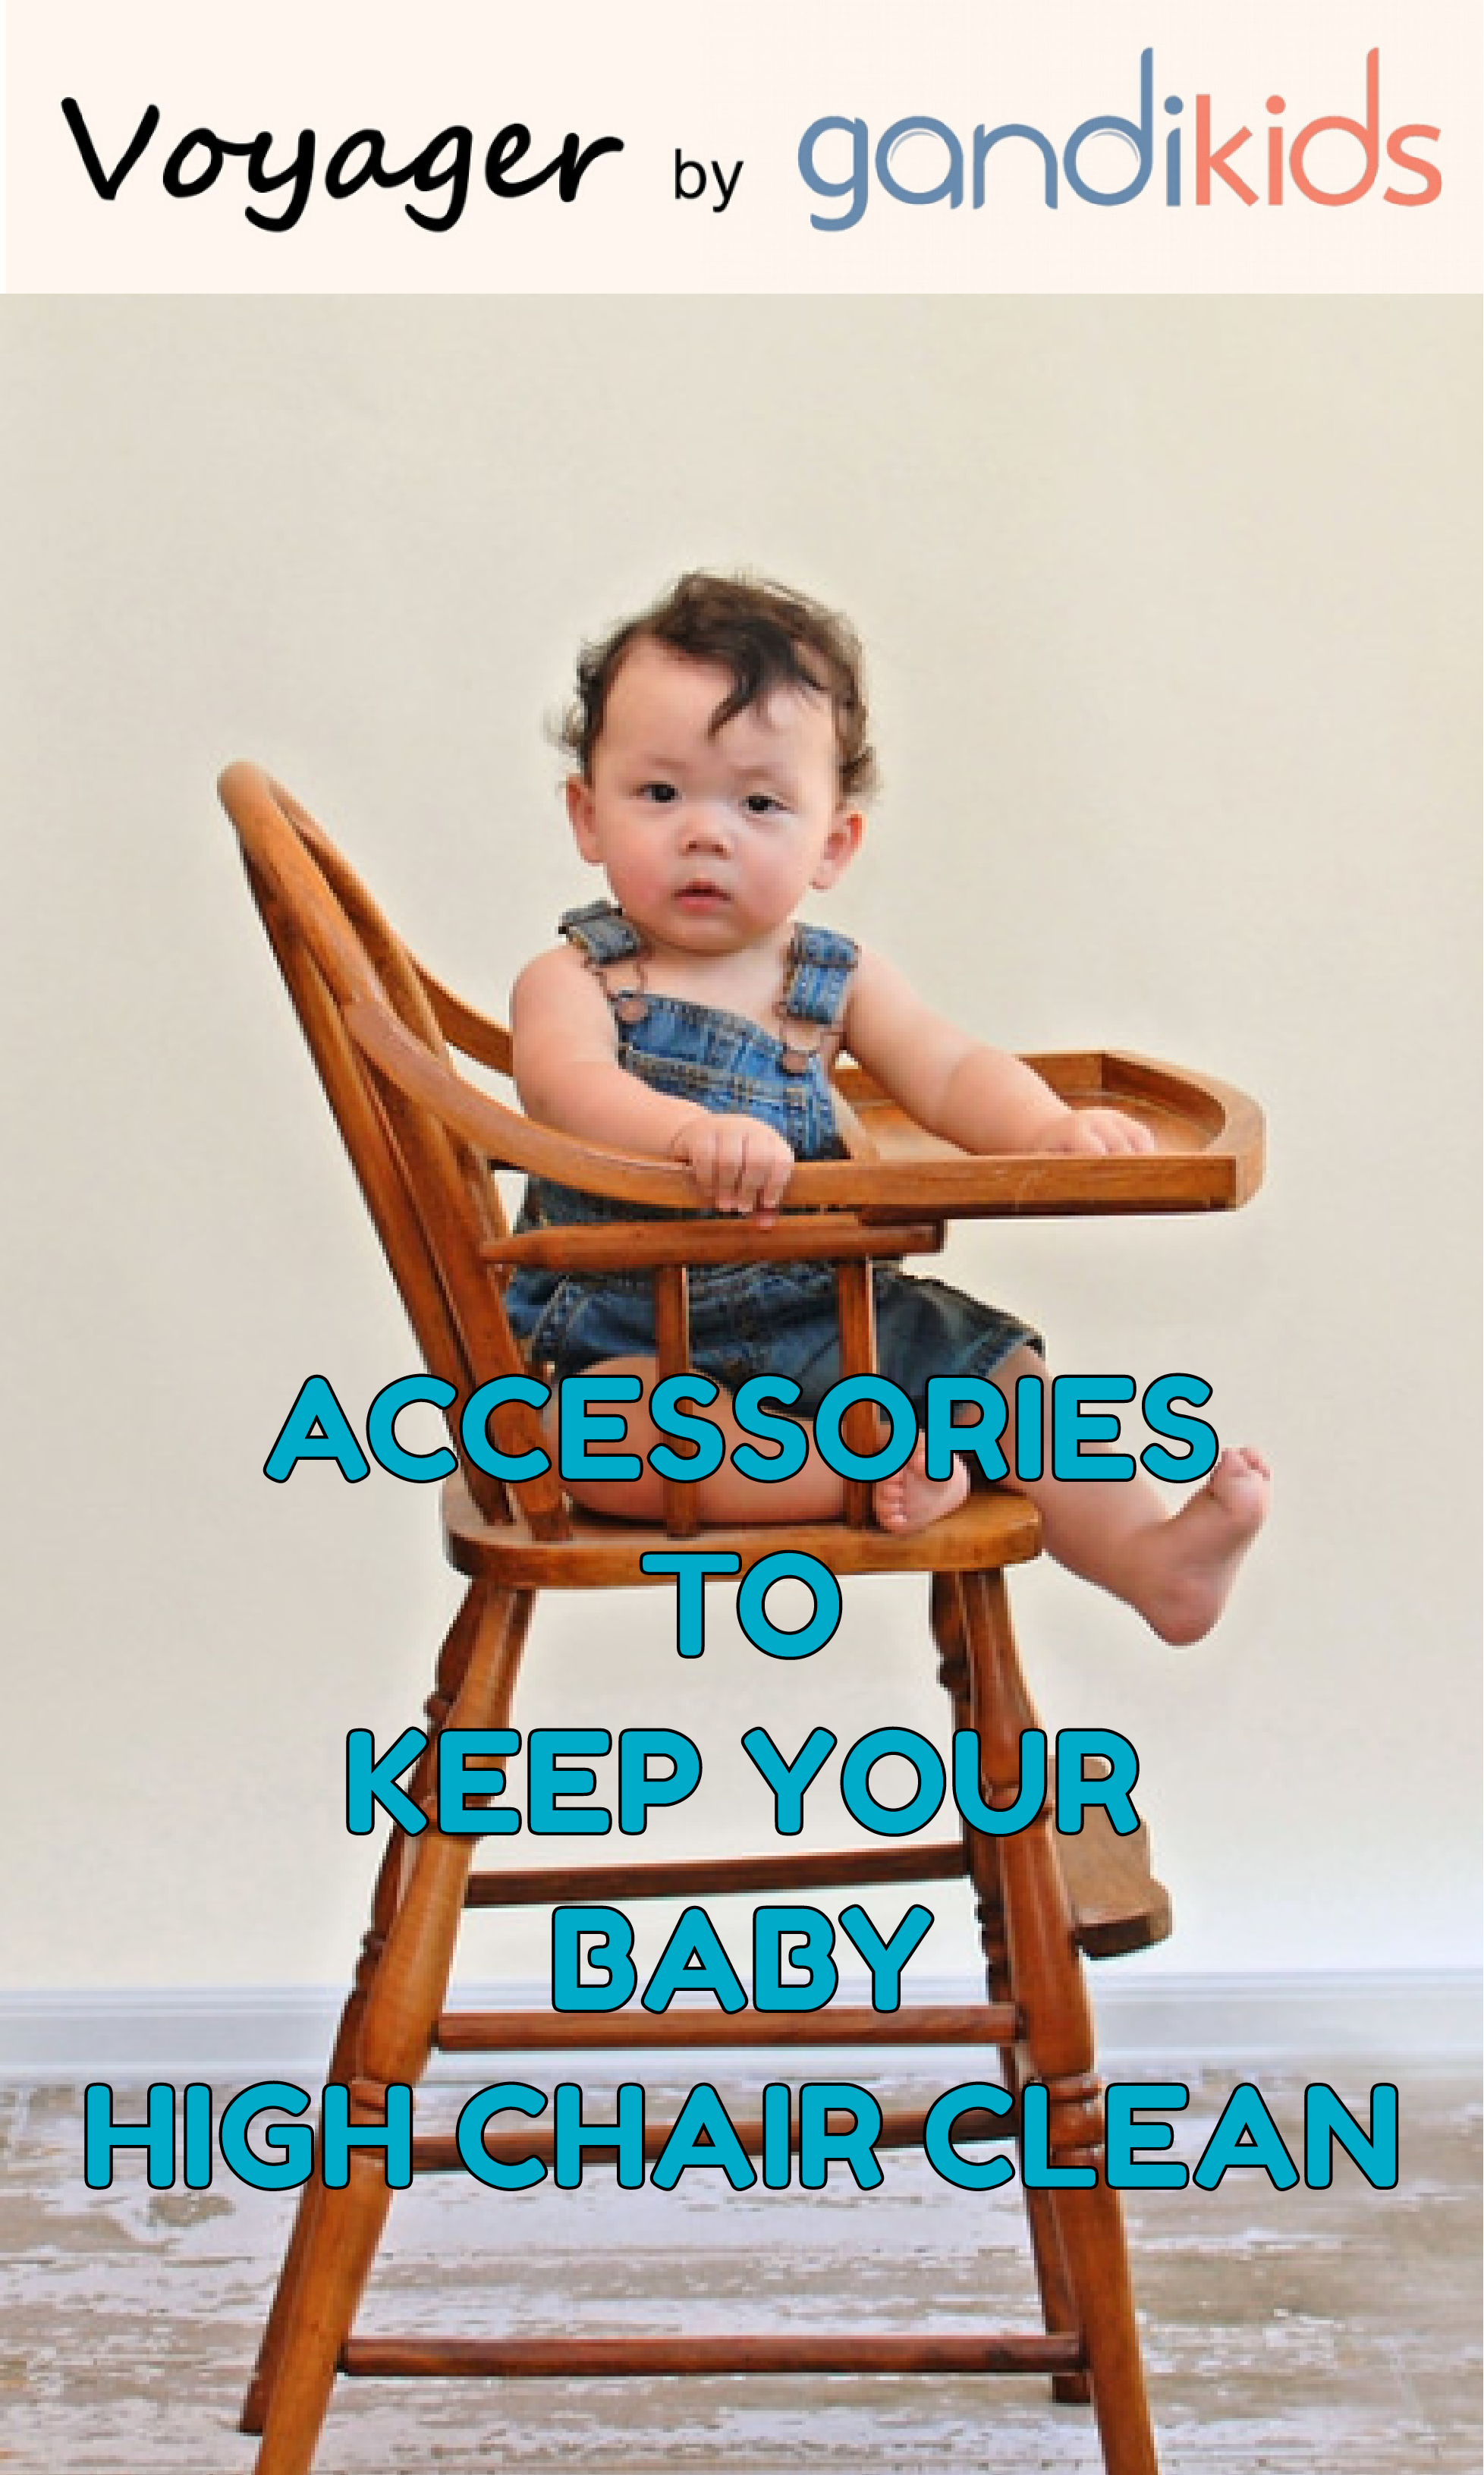 Accessories to keep baby high chair clean